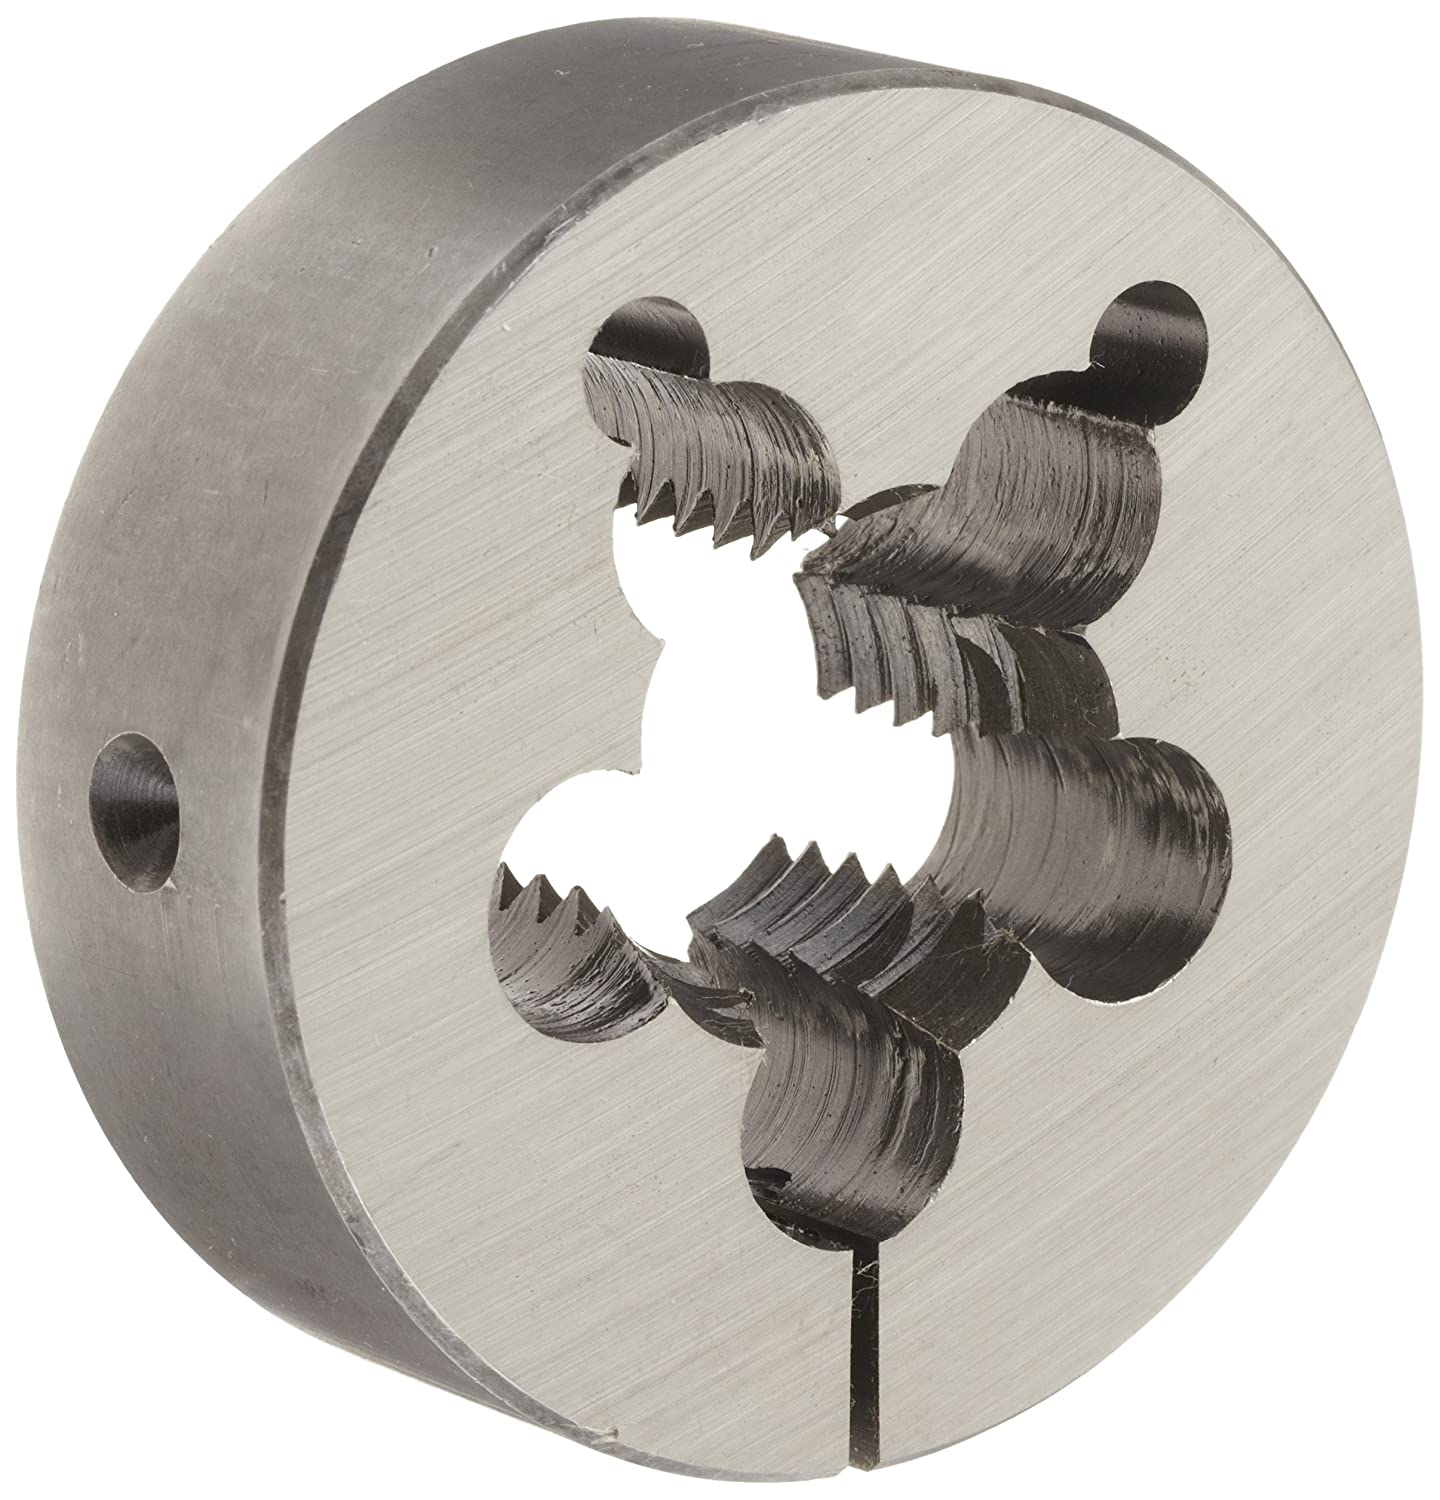 Aluminum Finish Pro-Lok 13 Latch Protector Kit Featuring 1 Anti-Spread Pin and Installation Spacer